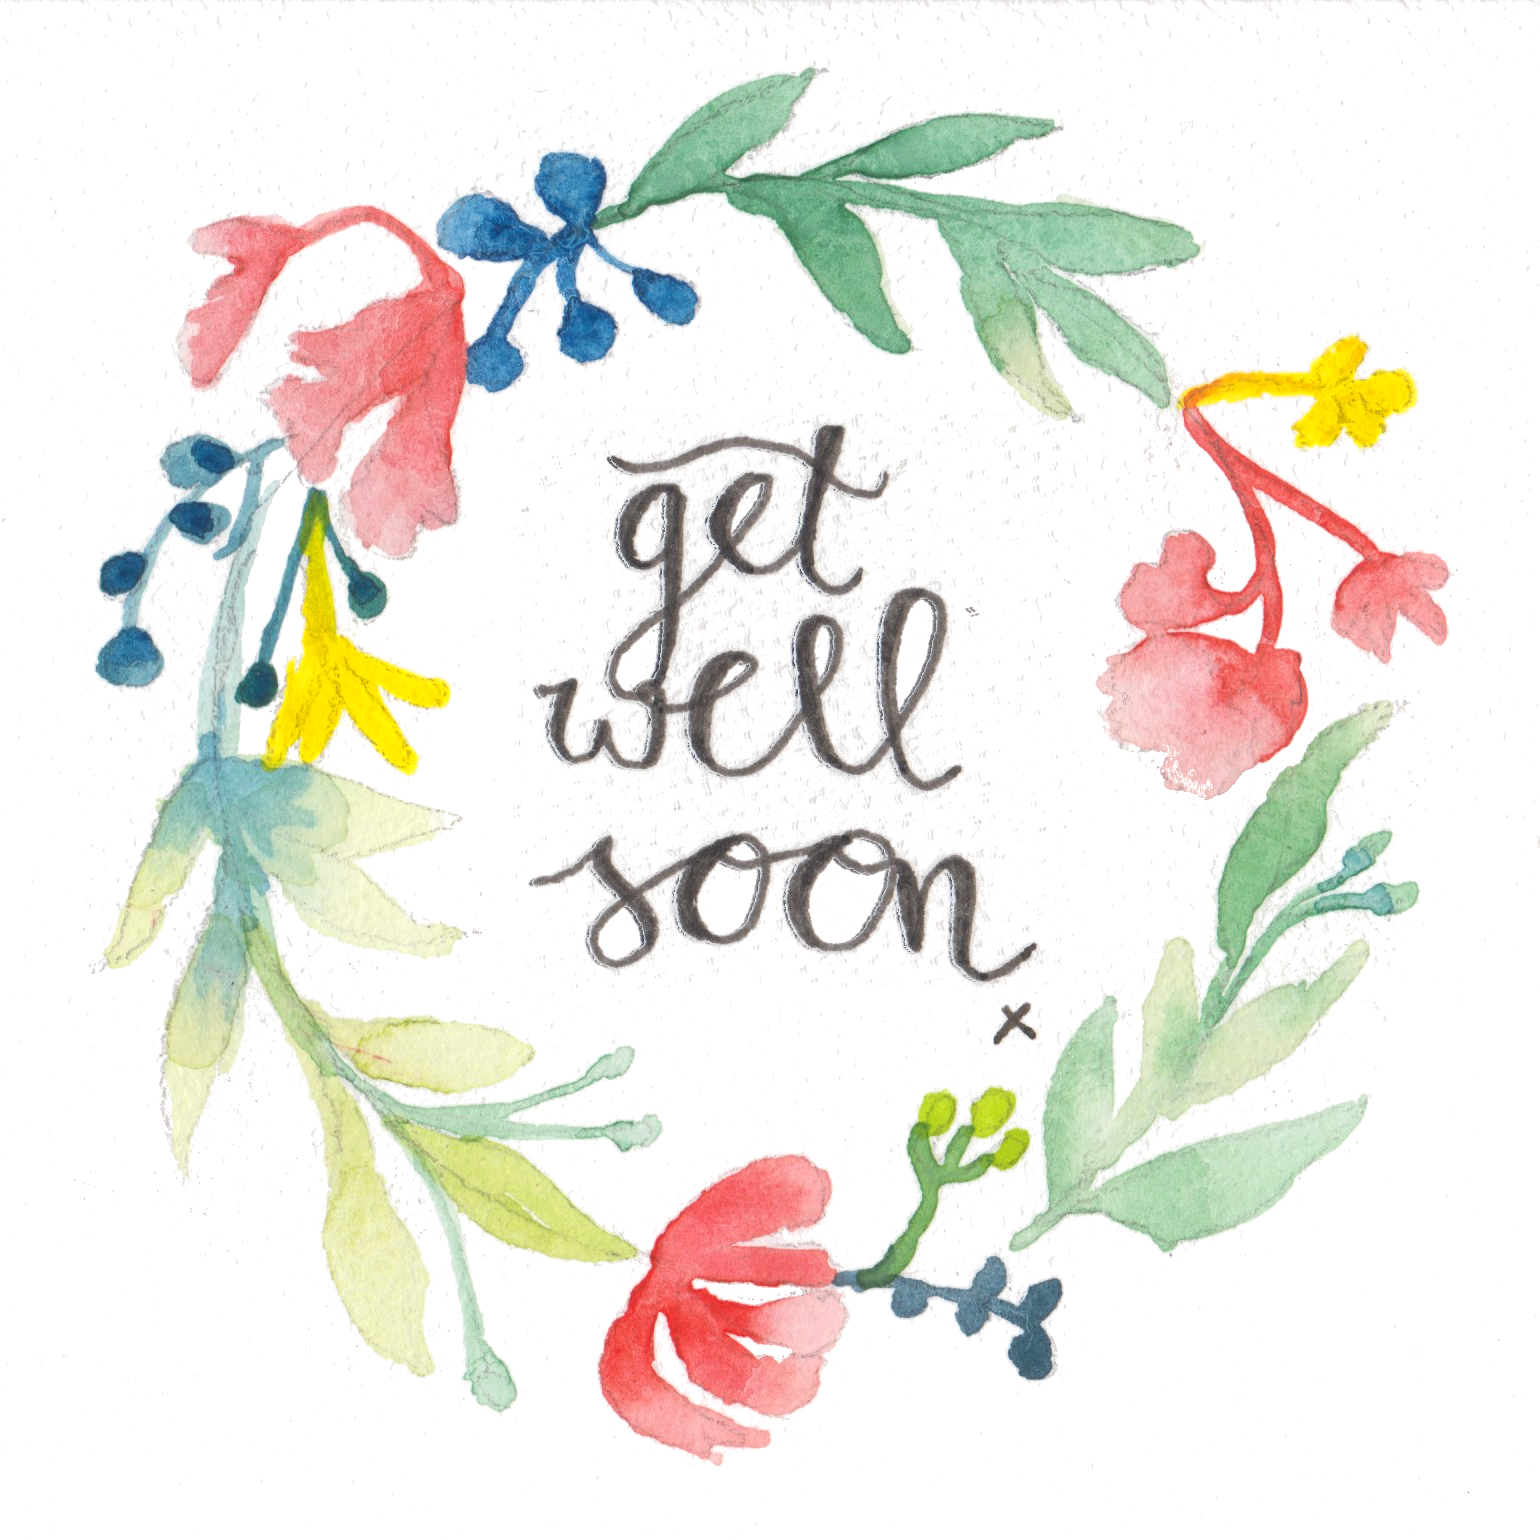 Get Well Soon Greeting Card Art Watercolour Floral Wreath Get Well Soon Watercolor Cards Get Well Cards